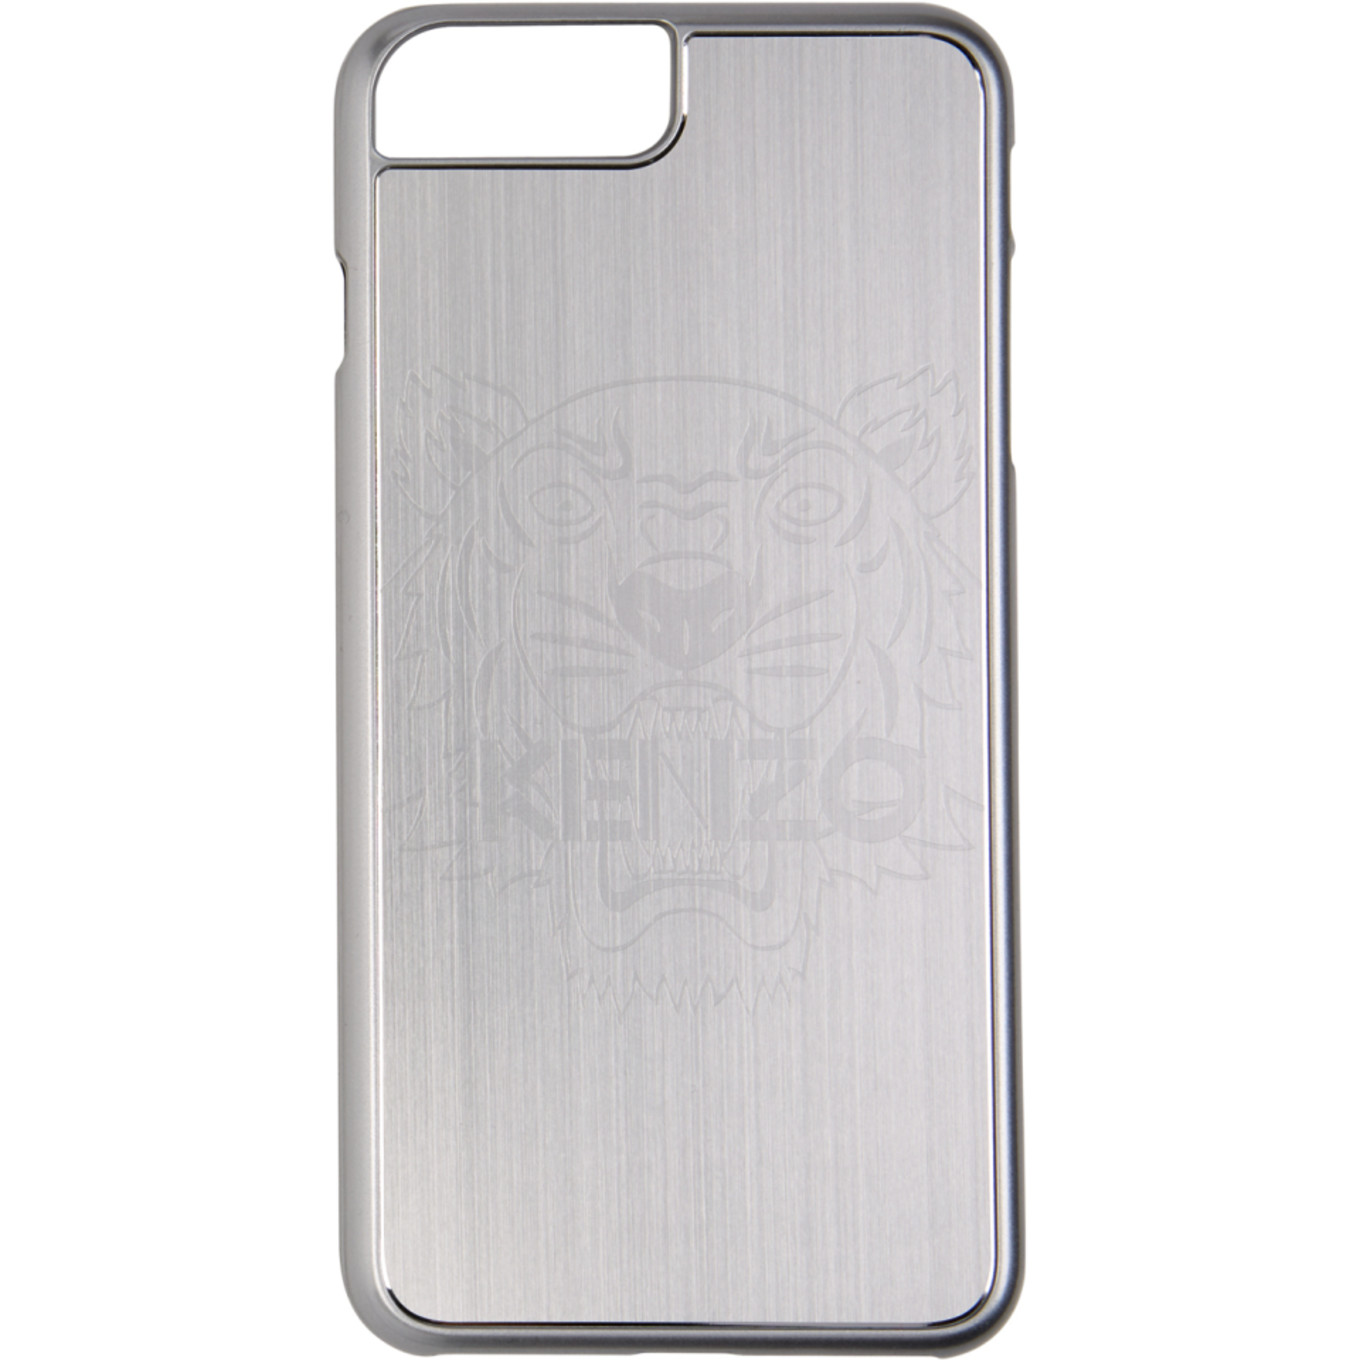 Silver Aluminium Tiger Head I Phone 7 Plus & 8 Plus Case by Kenzo